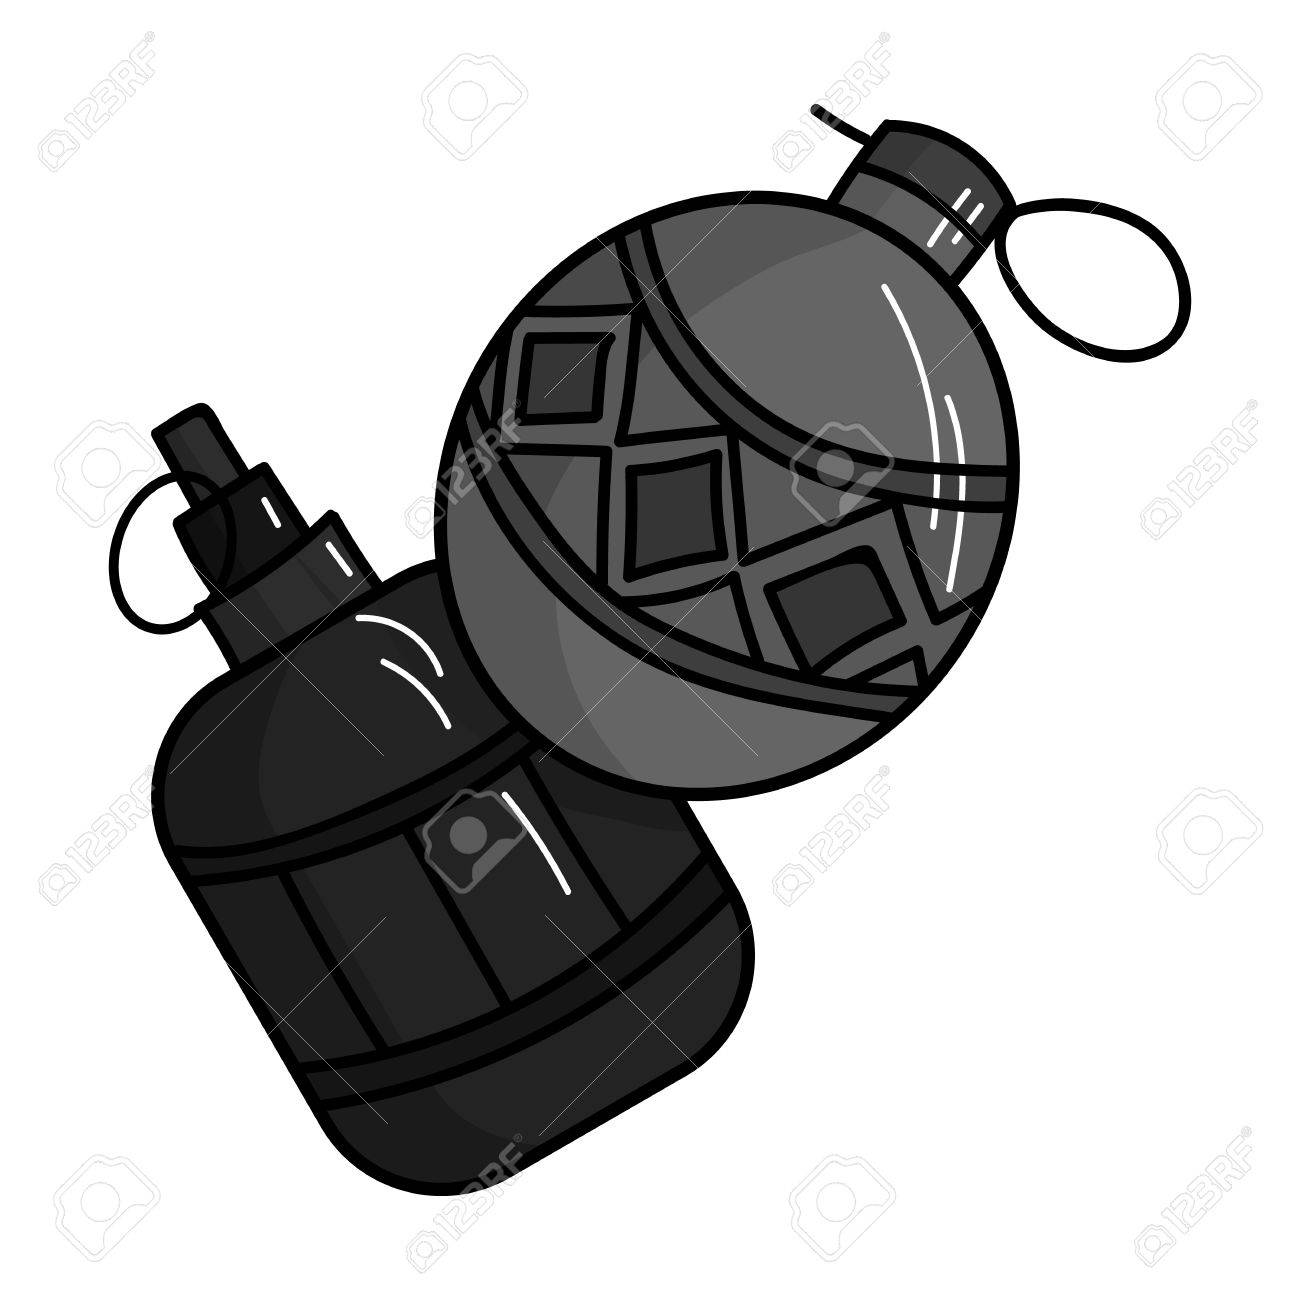 paintball hand grenade icon in outline style isolated on white rh 123rf com Clip Art with Transparent Background Grenade Vector